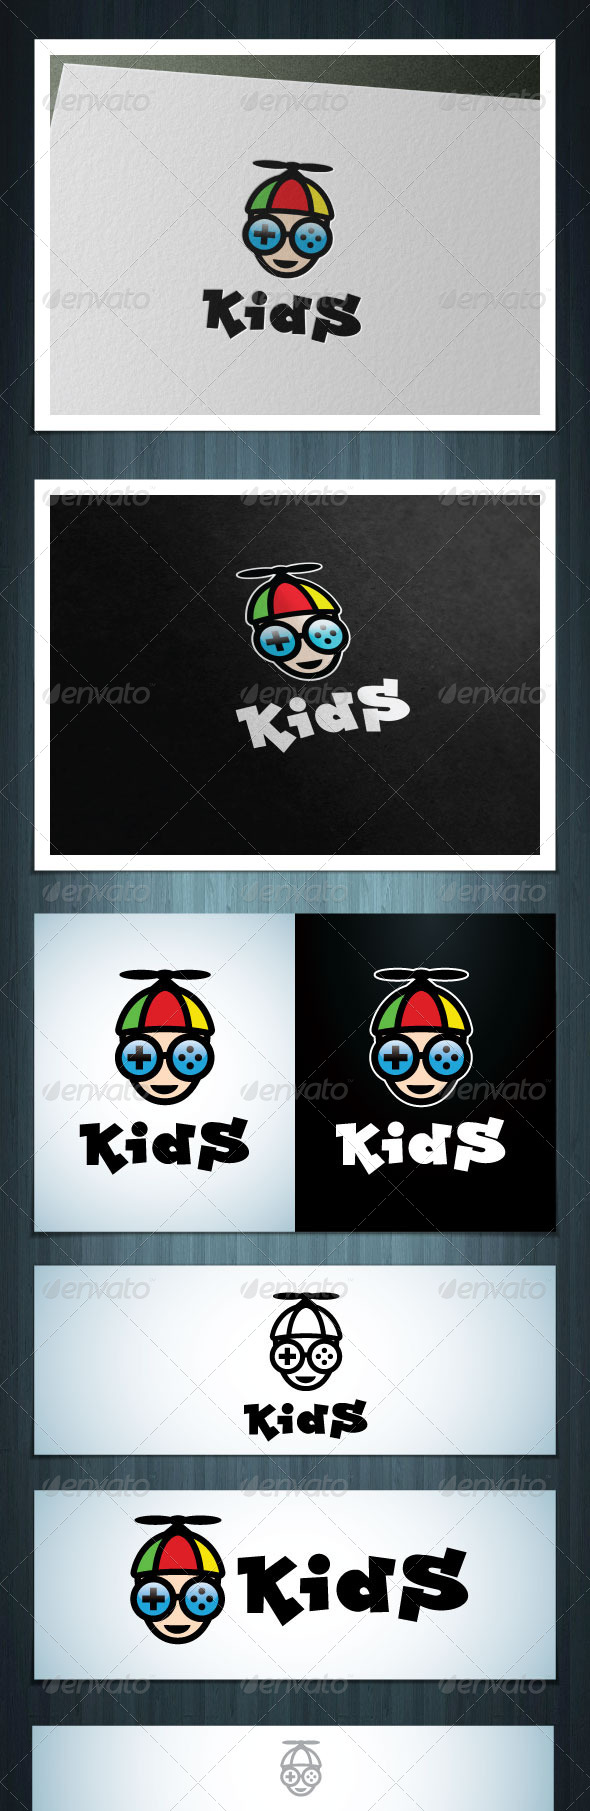 Kids Game - Vector Abstract